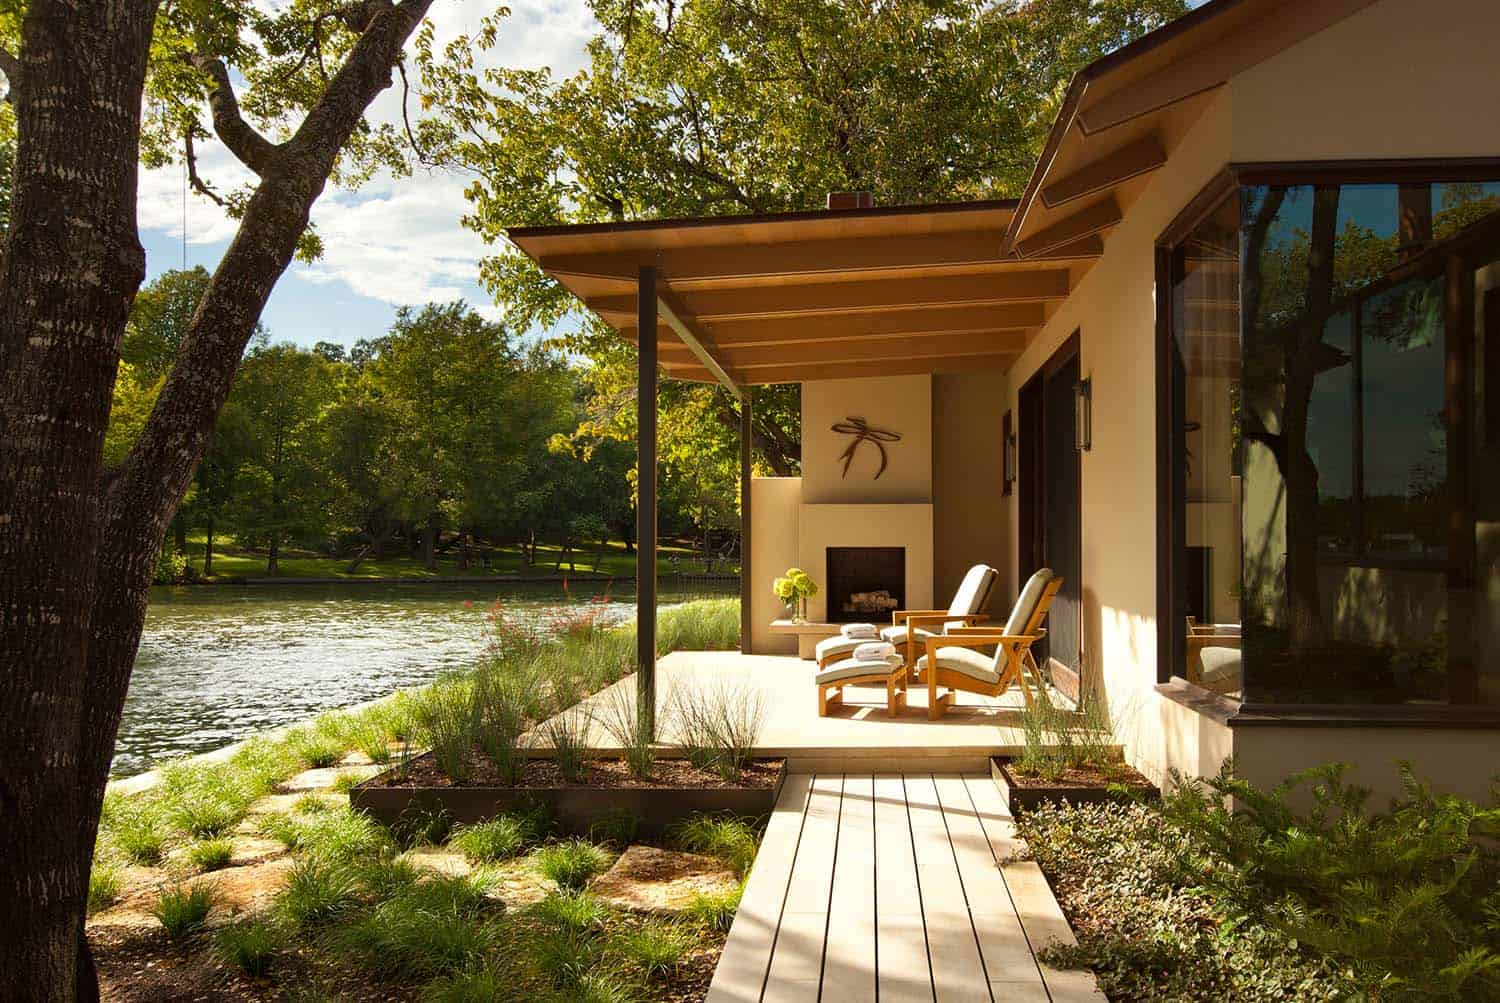 waterside retreats design